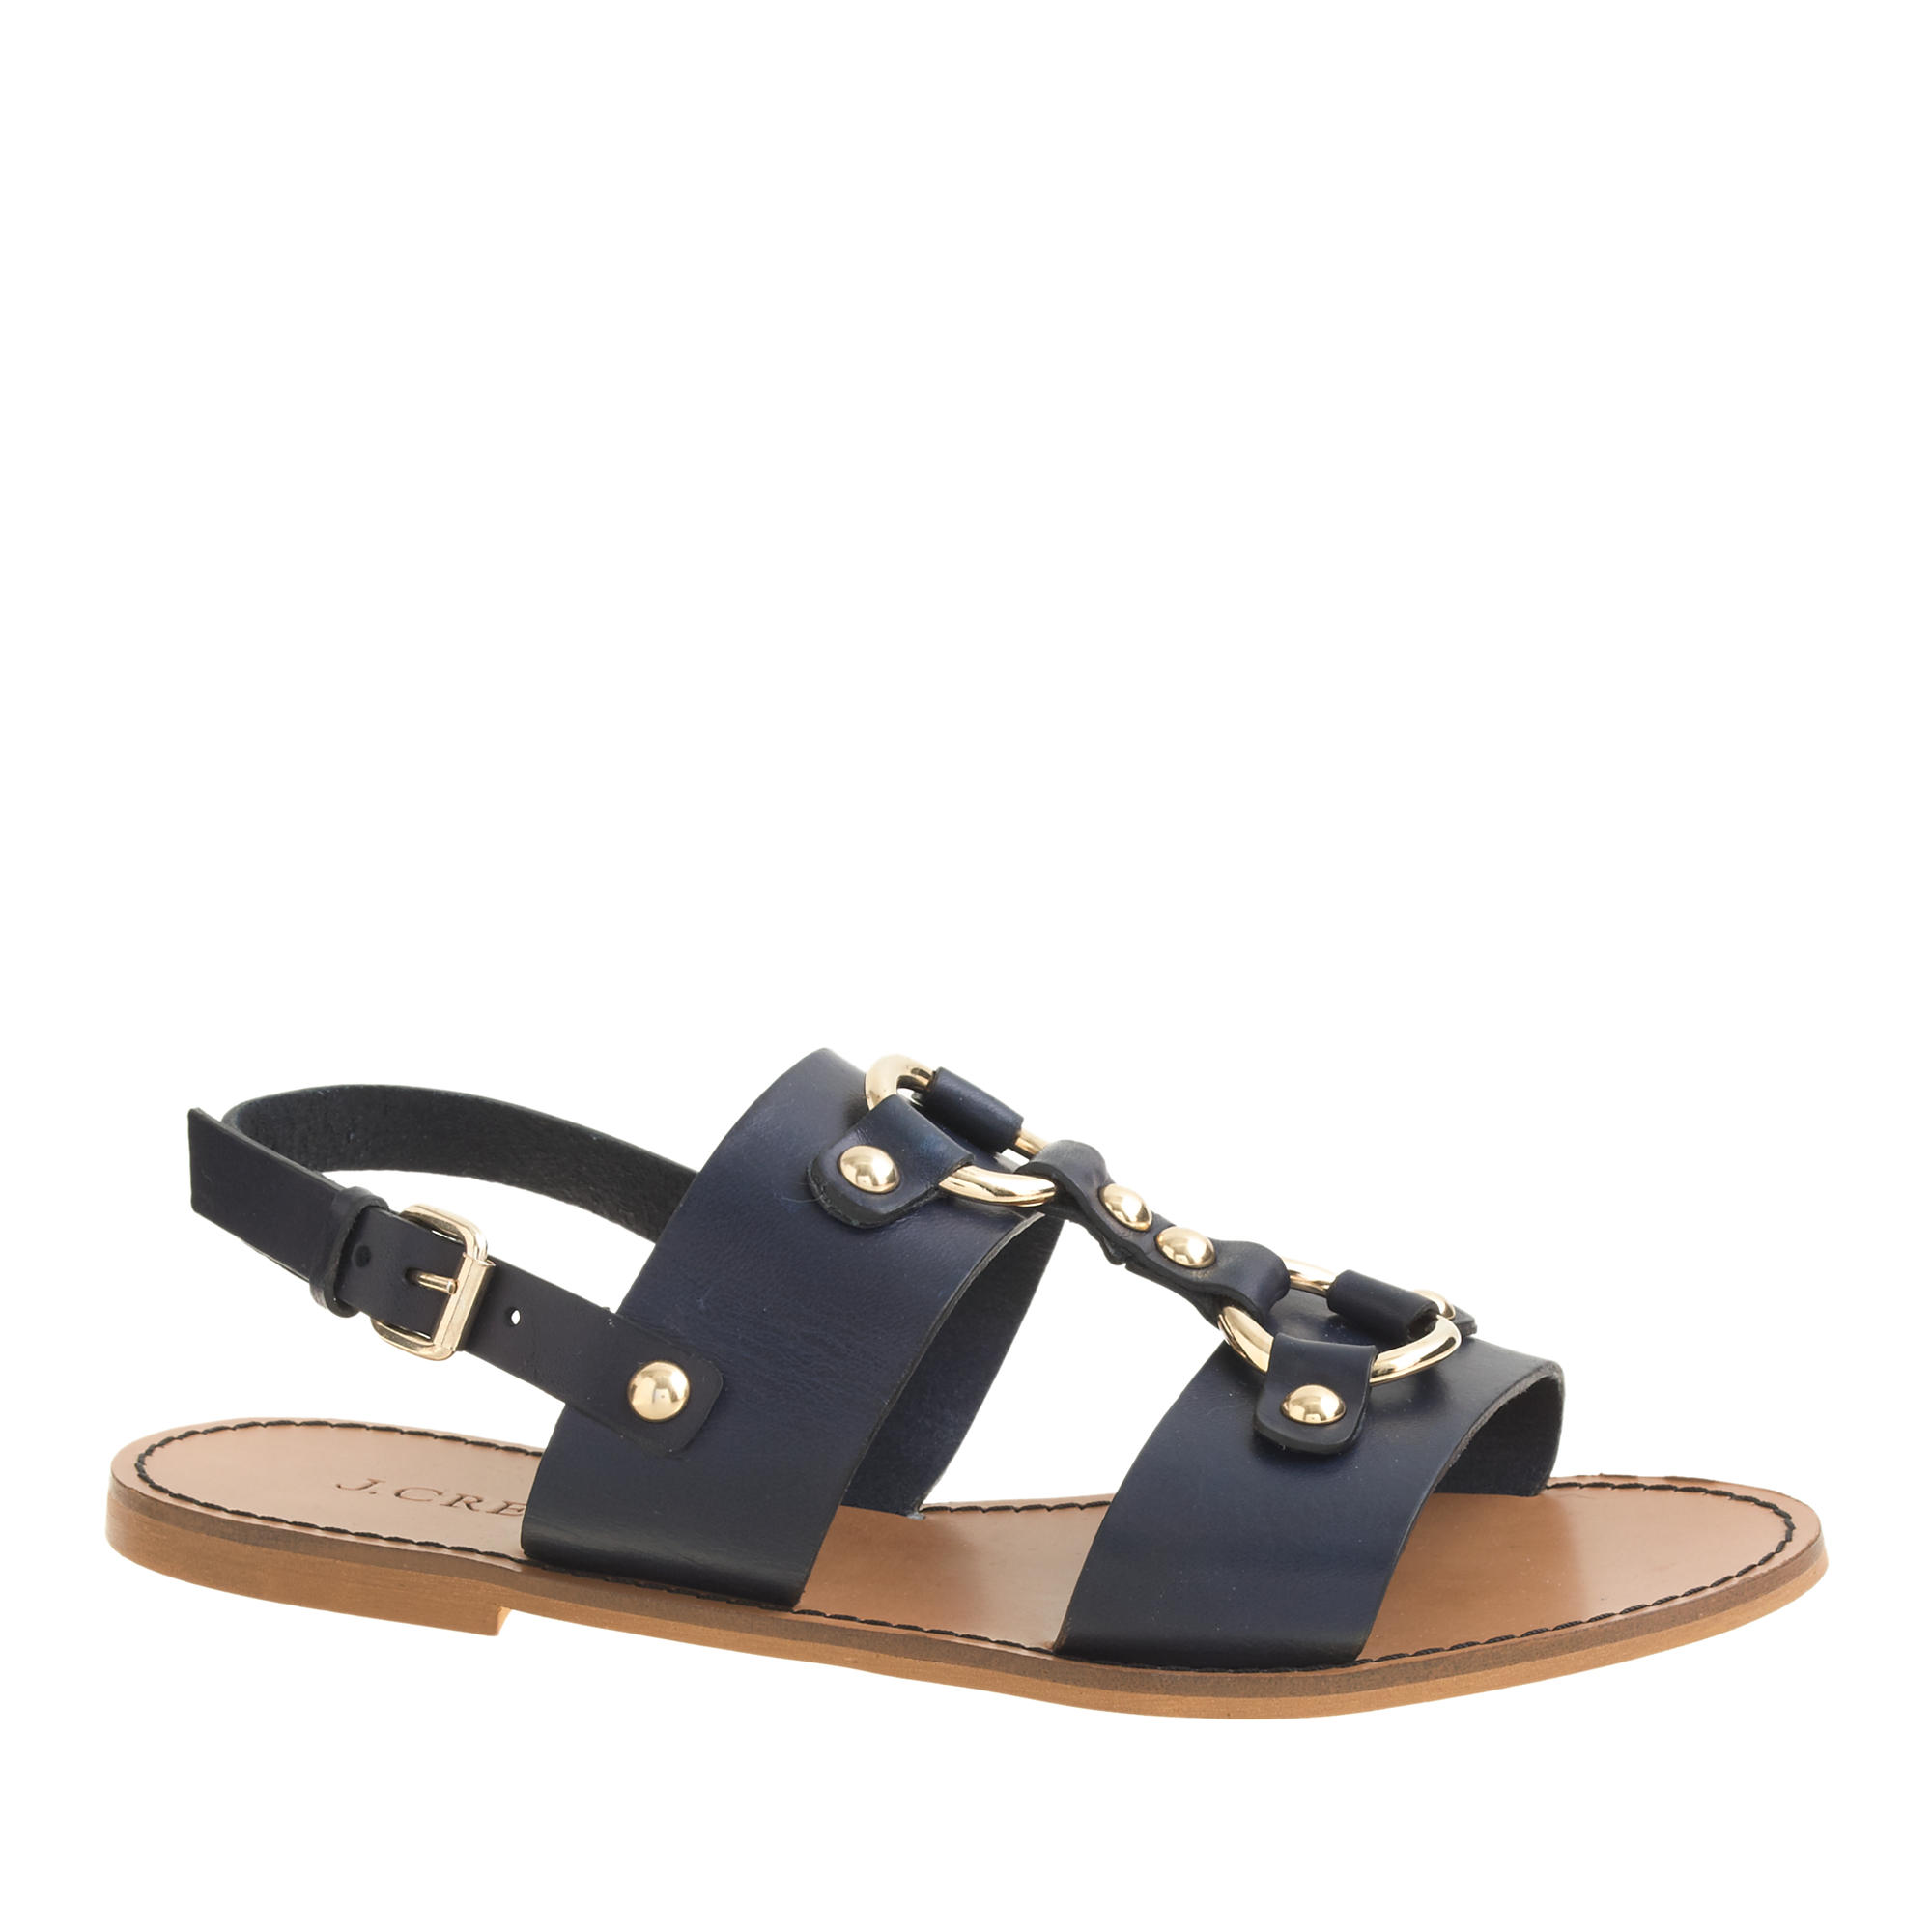 Equestrian slingback sandals j crew for J crew bedroom slippers